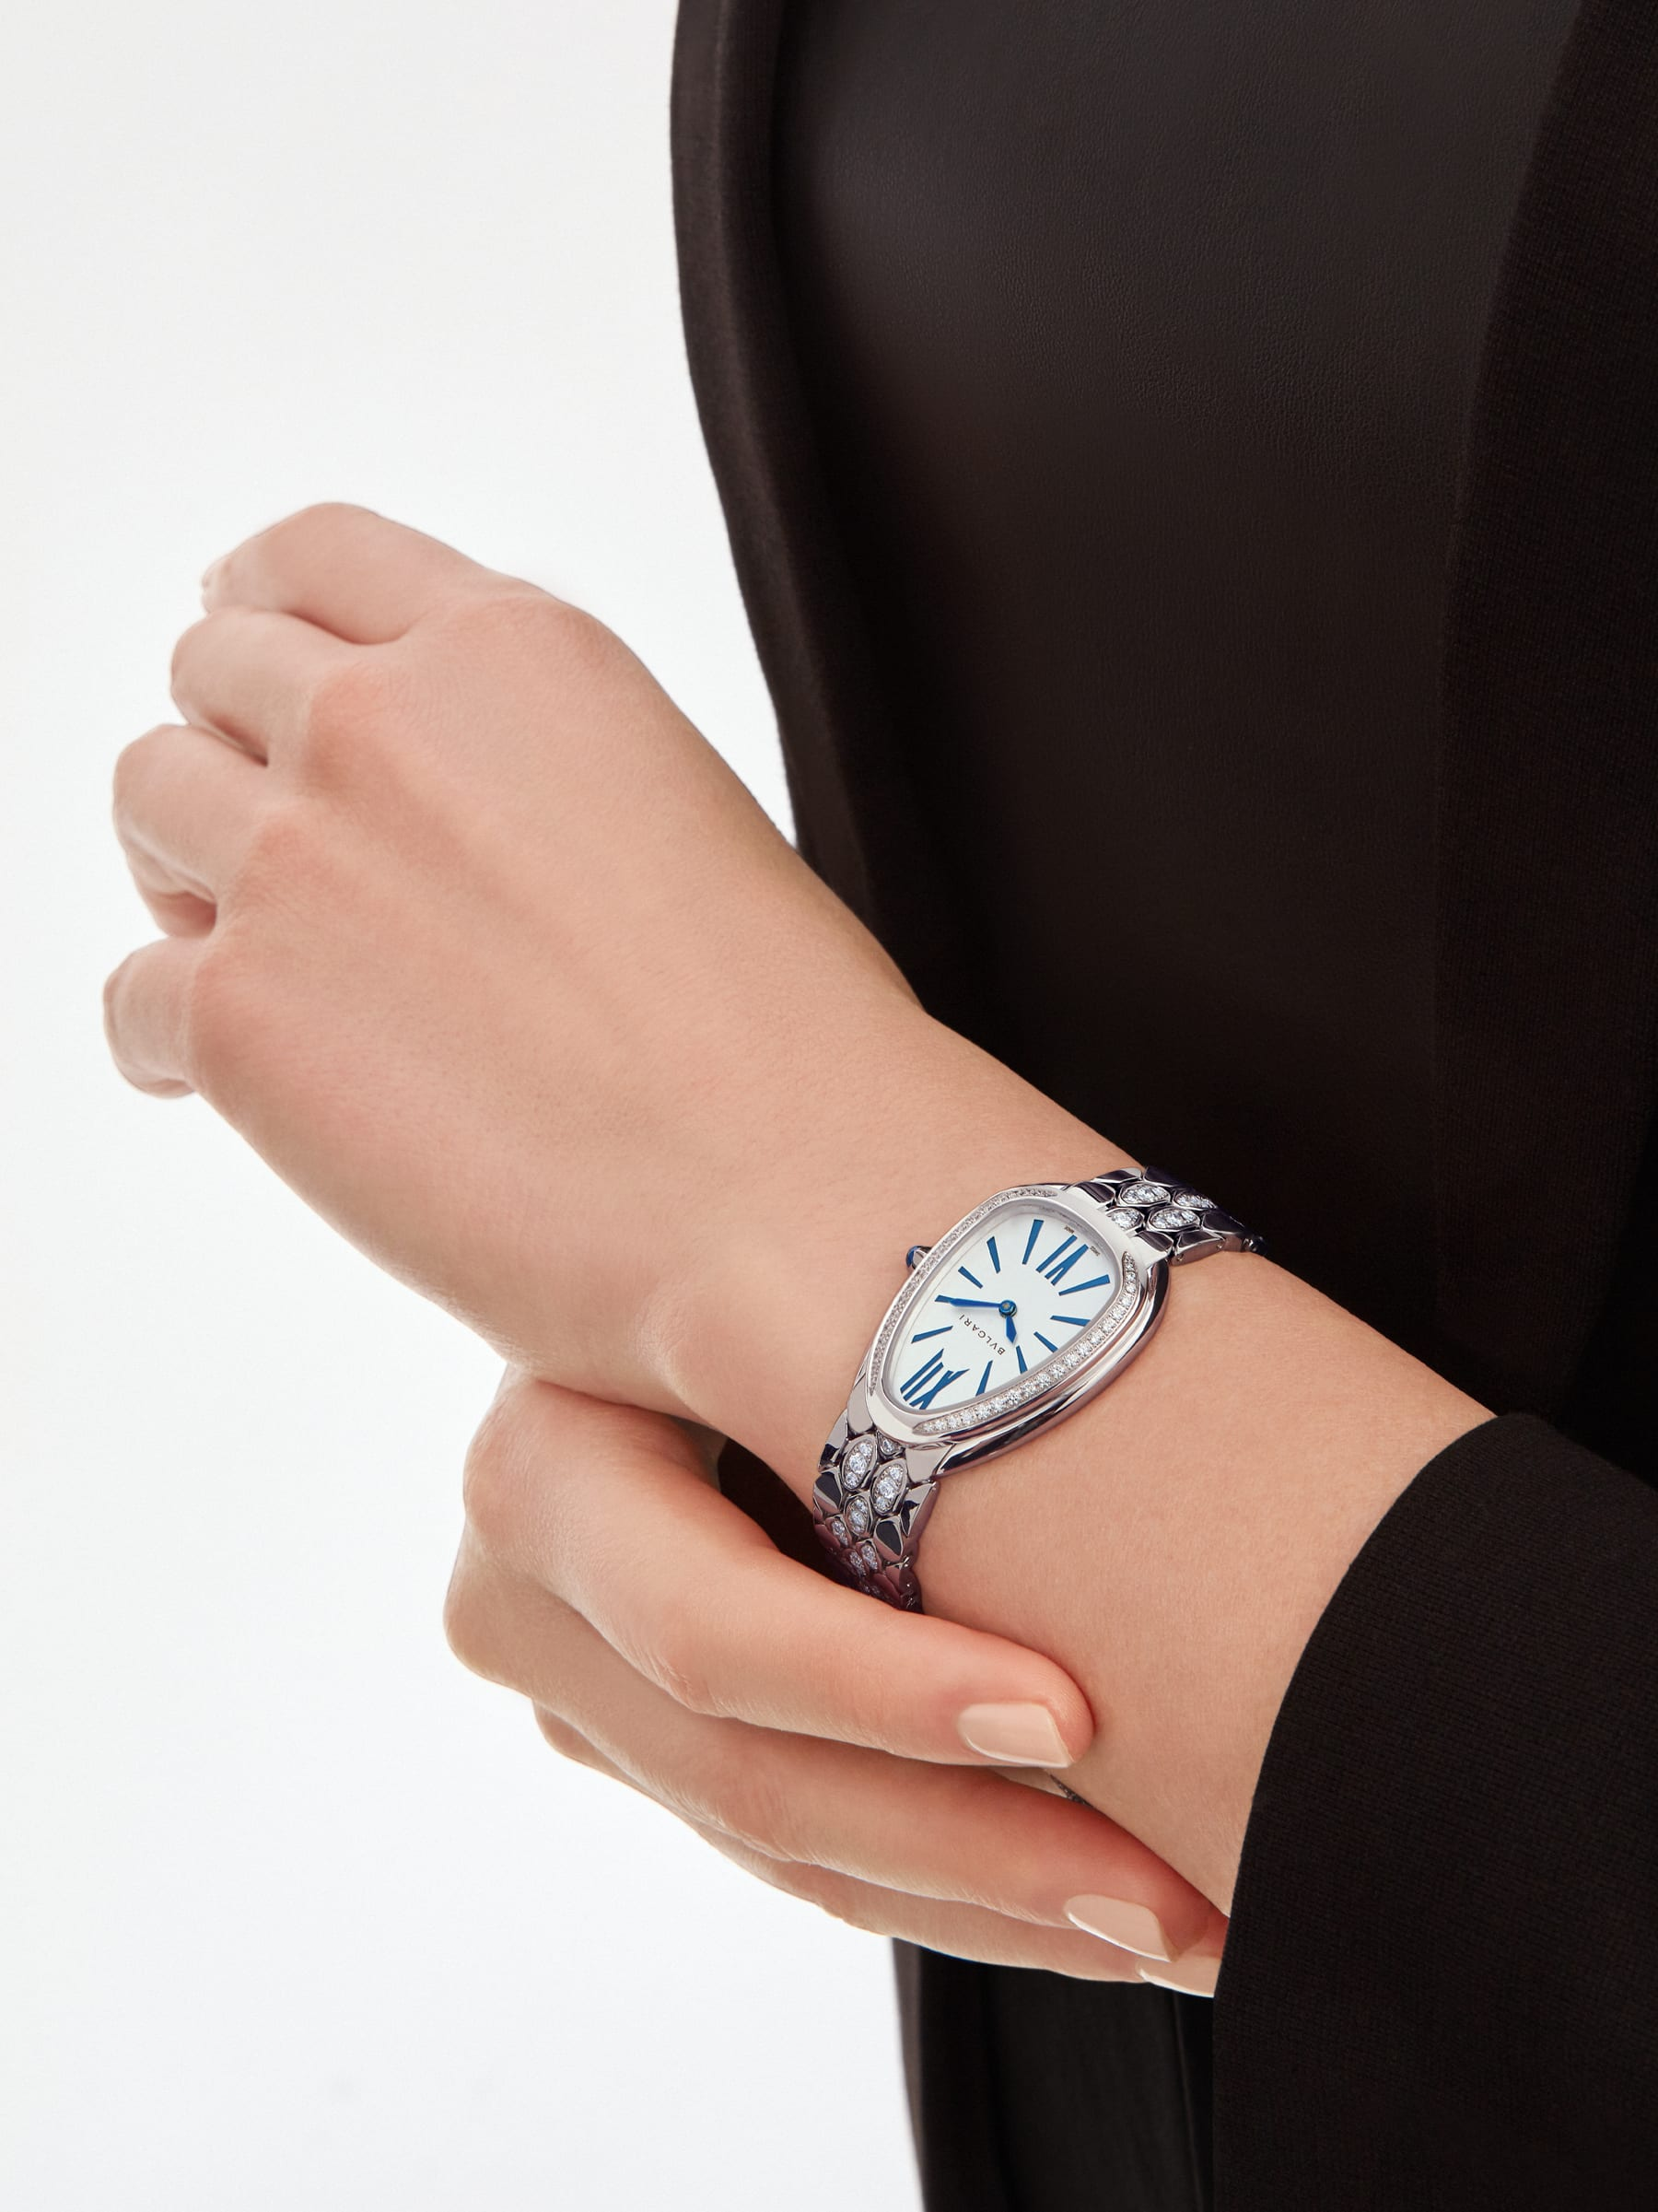 Serpenti Seduttori watch with 18 kt white gold case and bracelet both set with diamonds, and silver opaline dial 103276 image 4